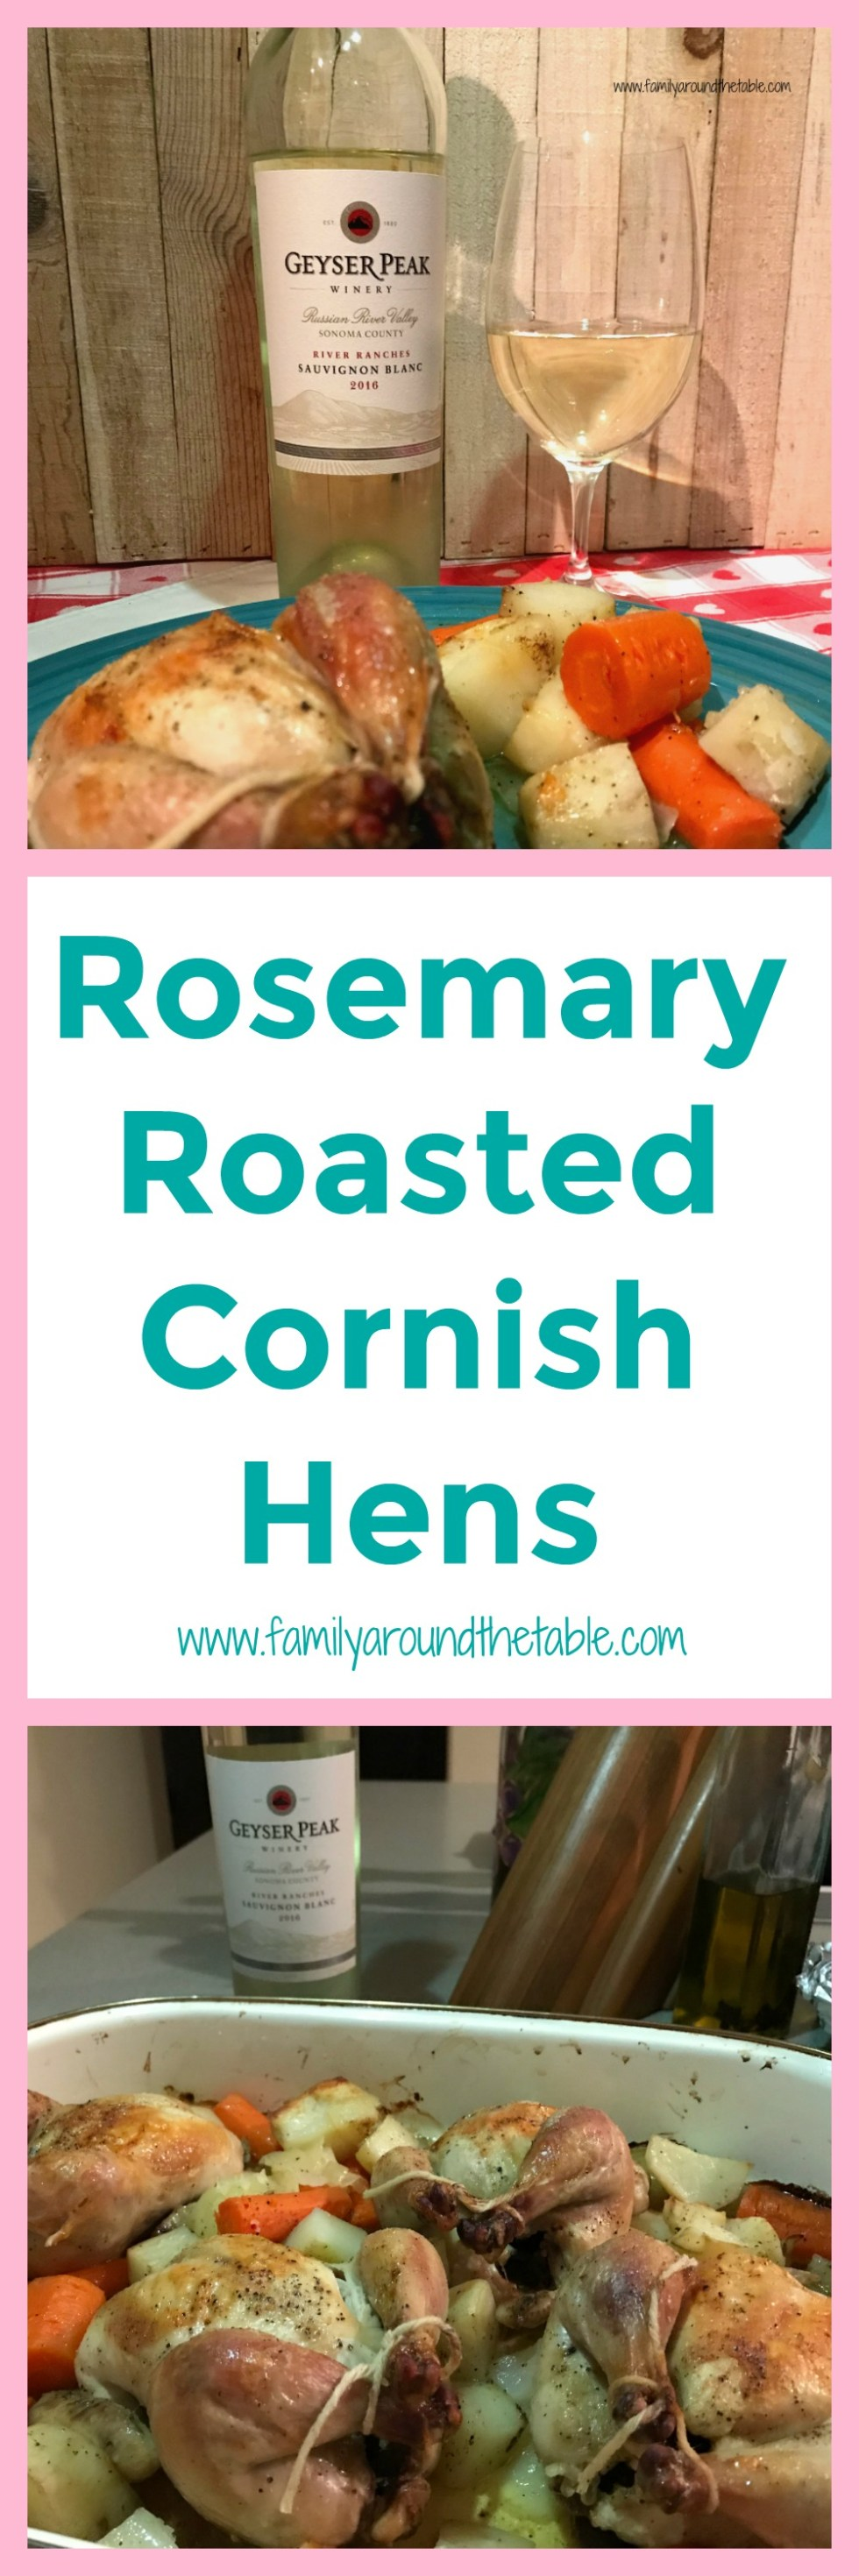 Rosemary roasted Cornish hens are a nice change from the same old meals.